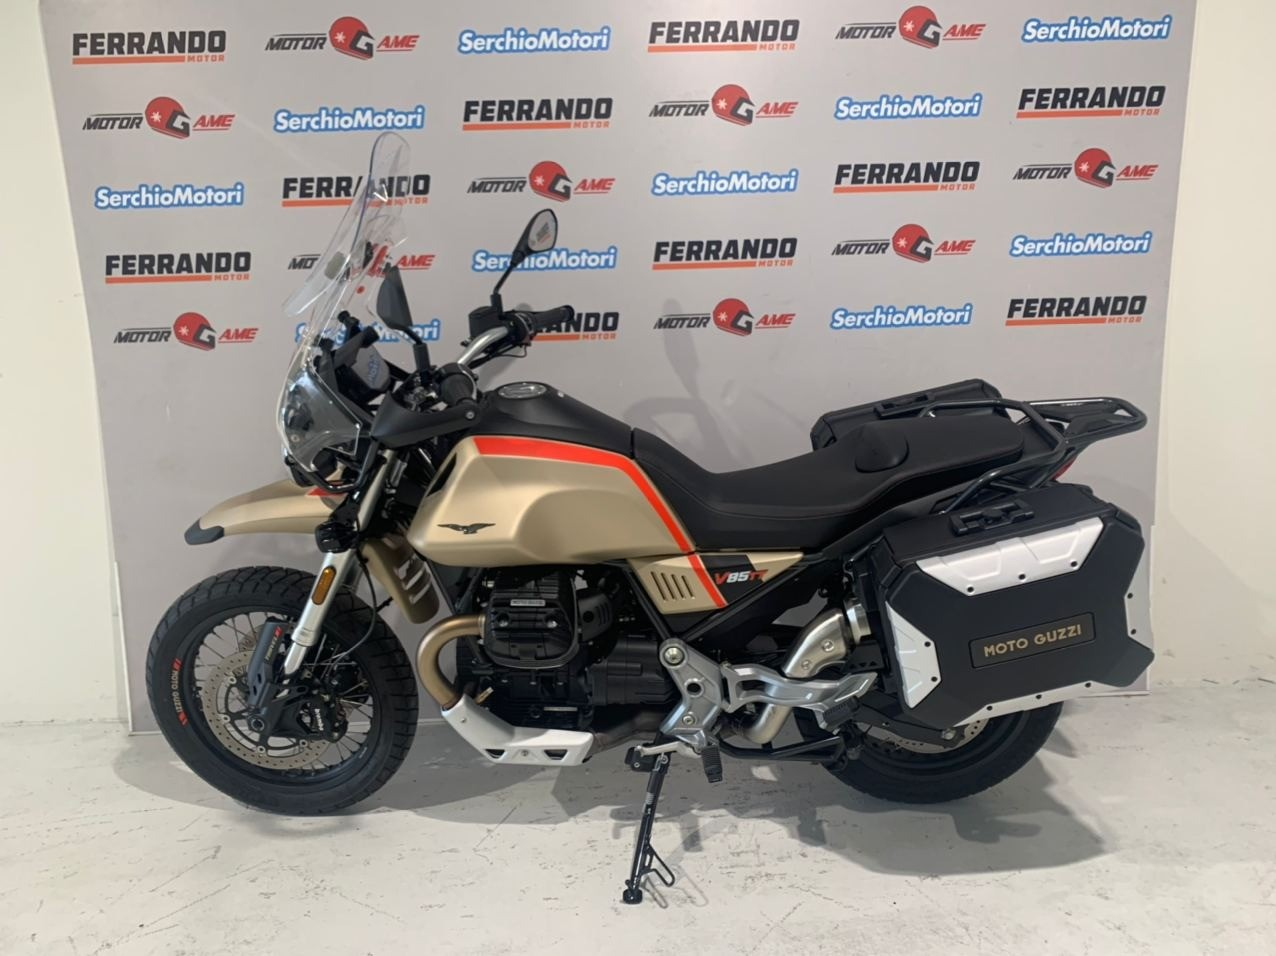 Moto Guzzi V85 TT Travel edition - Soli 1200 km!